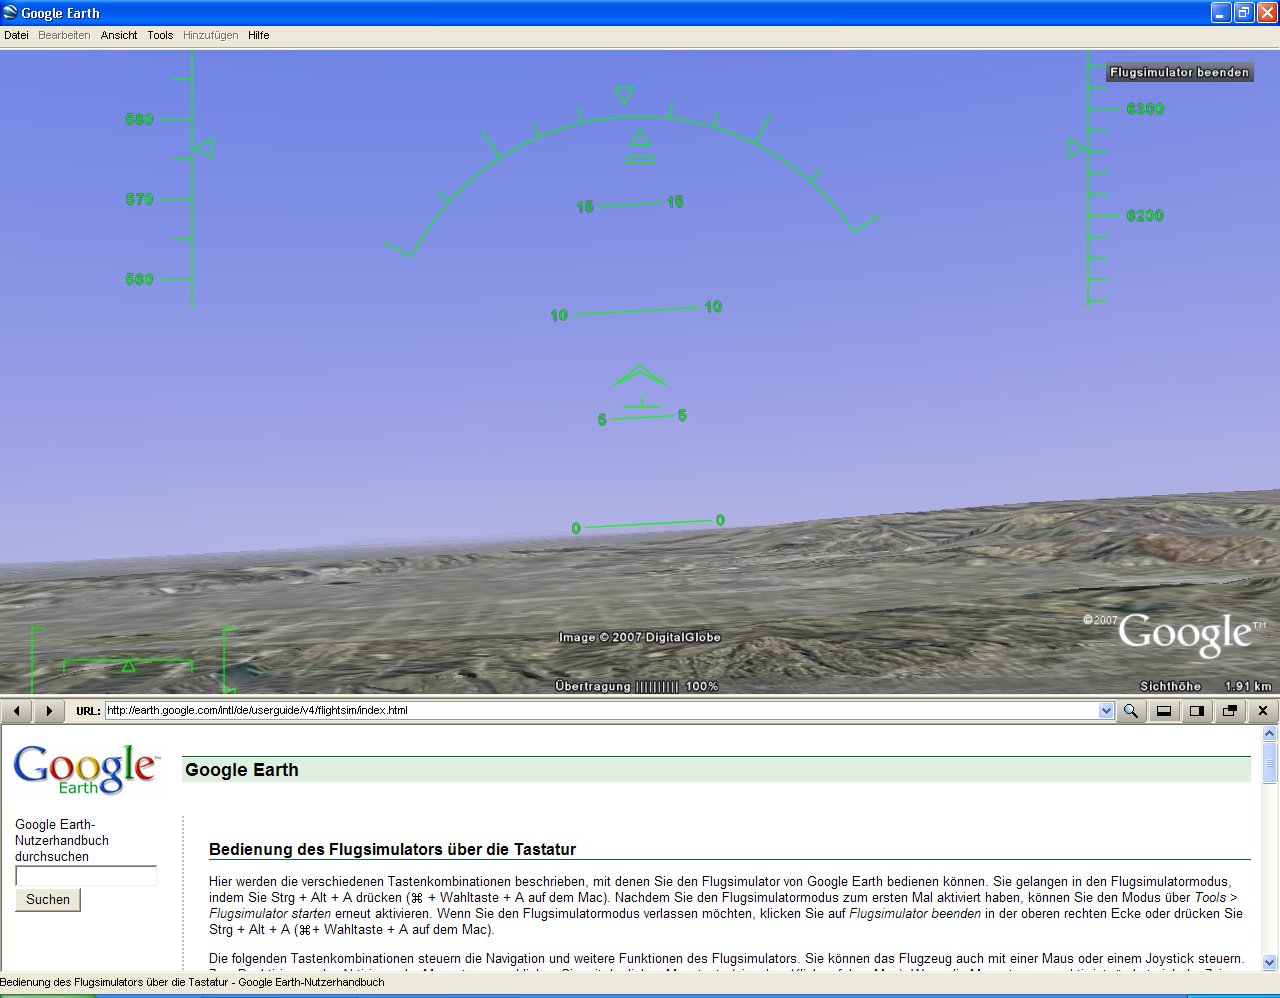 Versteckter Flugsimulator in Google Earth